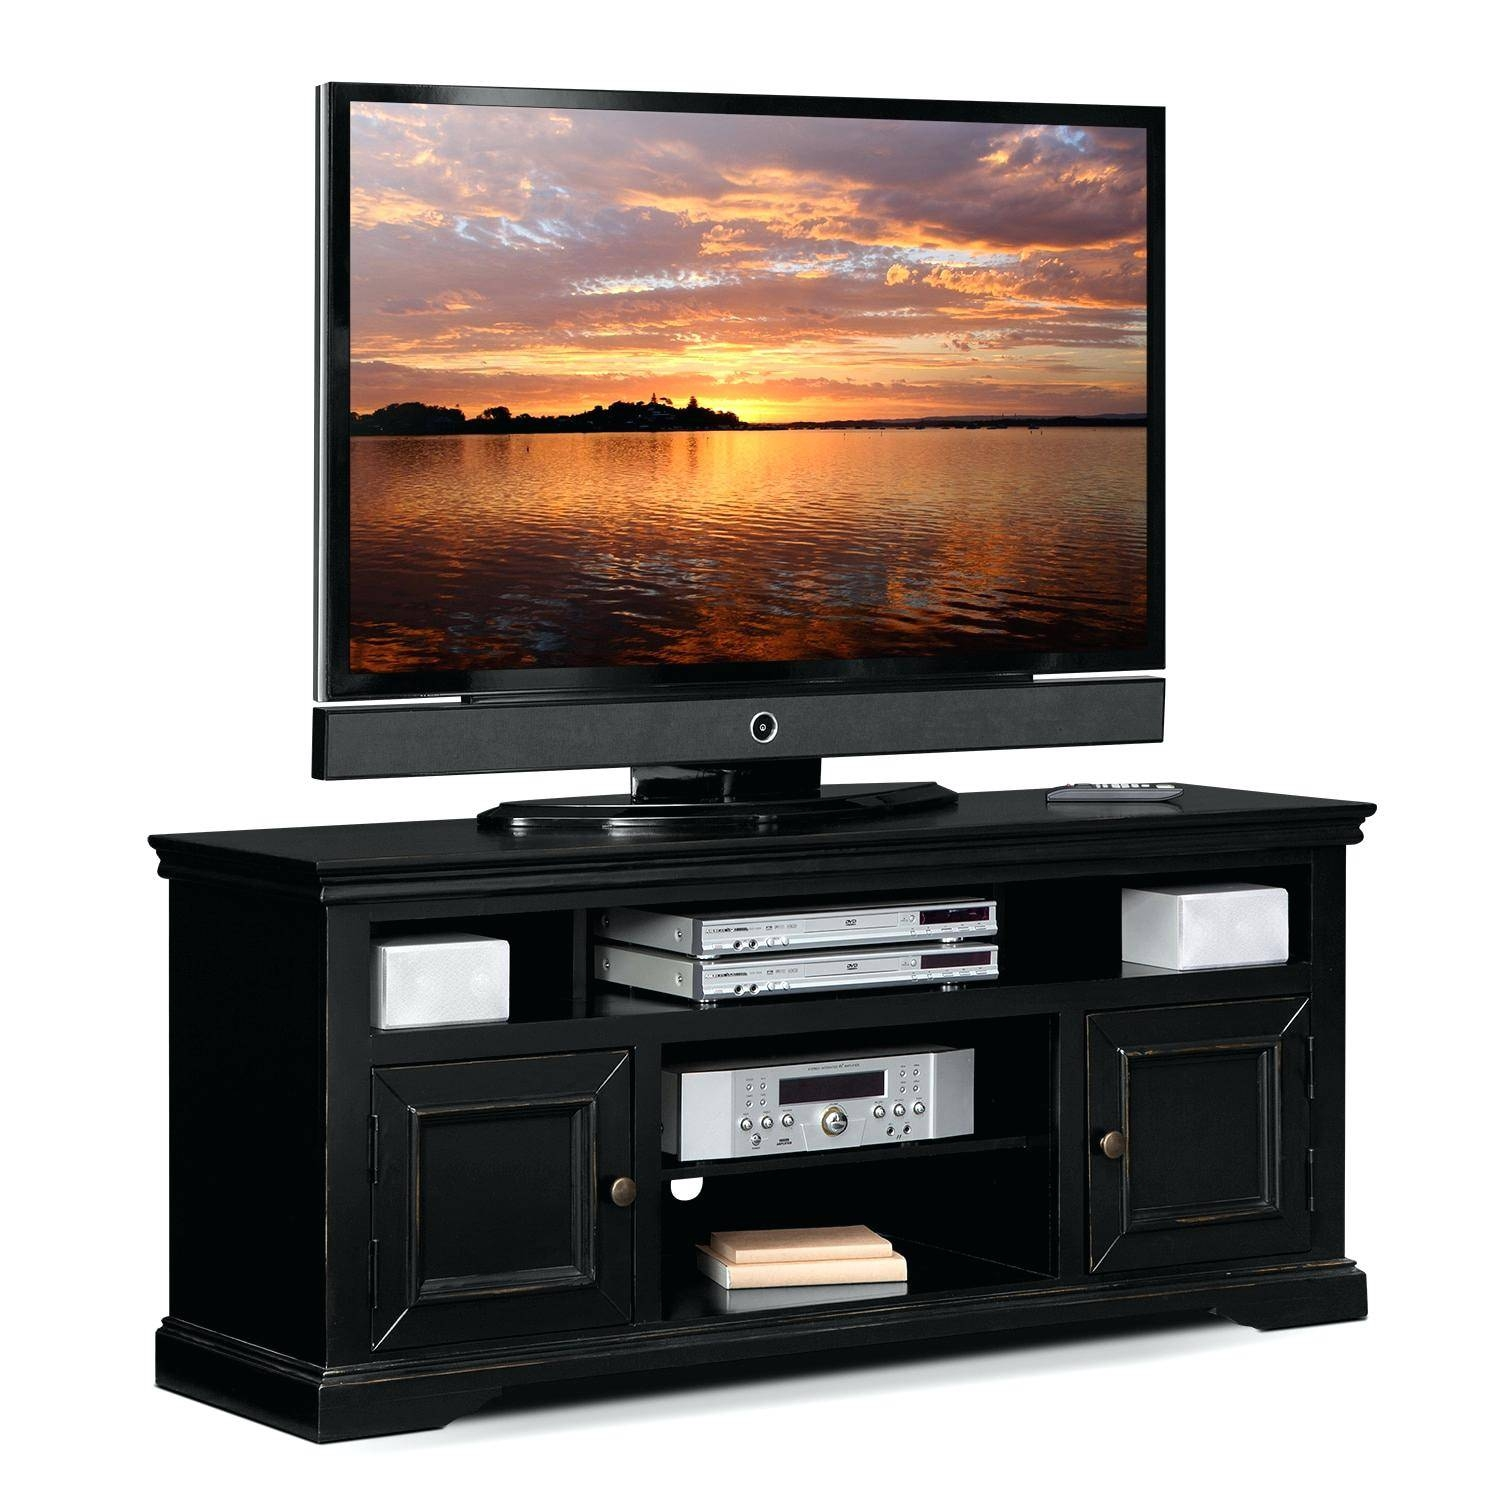 Tv Stand : 94 Amazing Default Name Tv Stand For 60 Inch Tv Walmart throughout 61 Inch Tv Stands (Image 6 of 15)